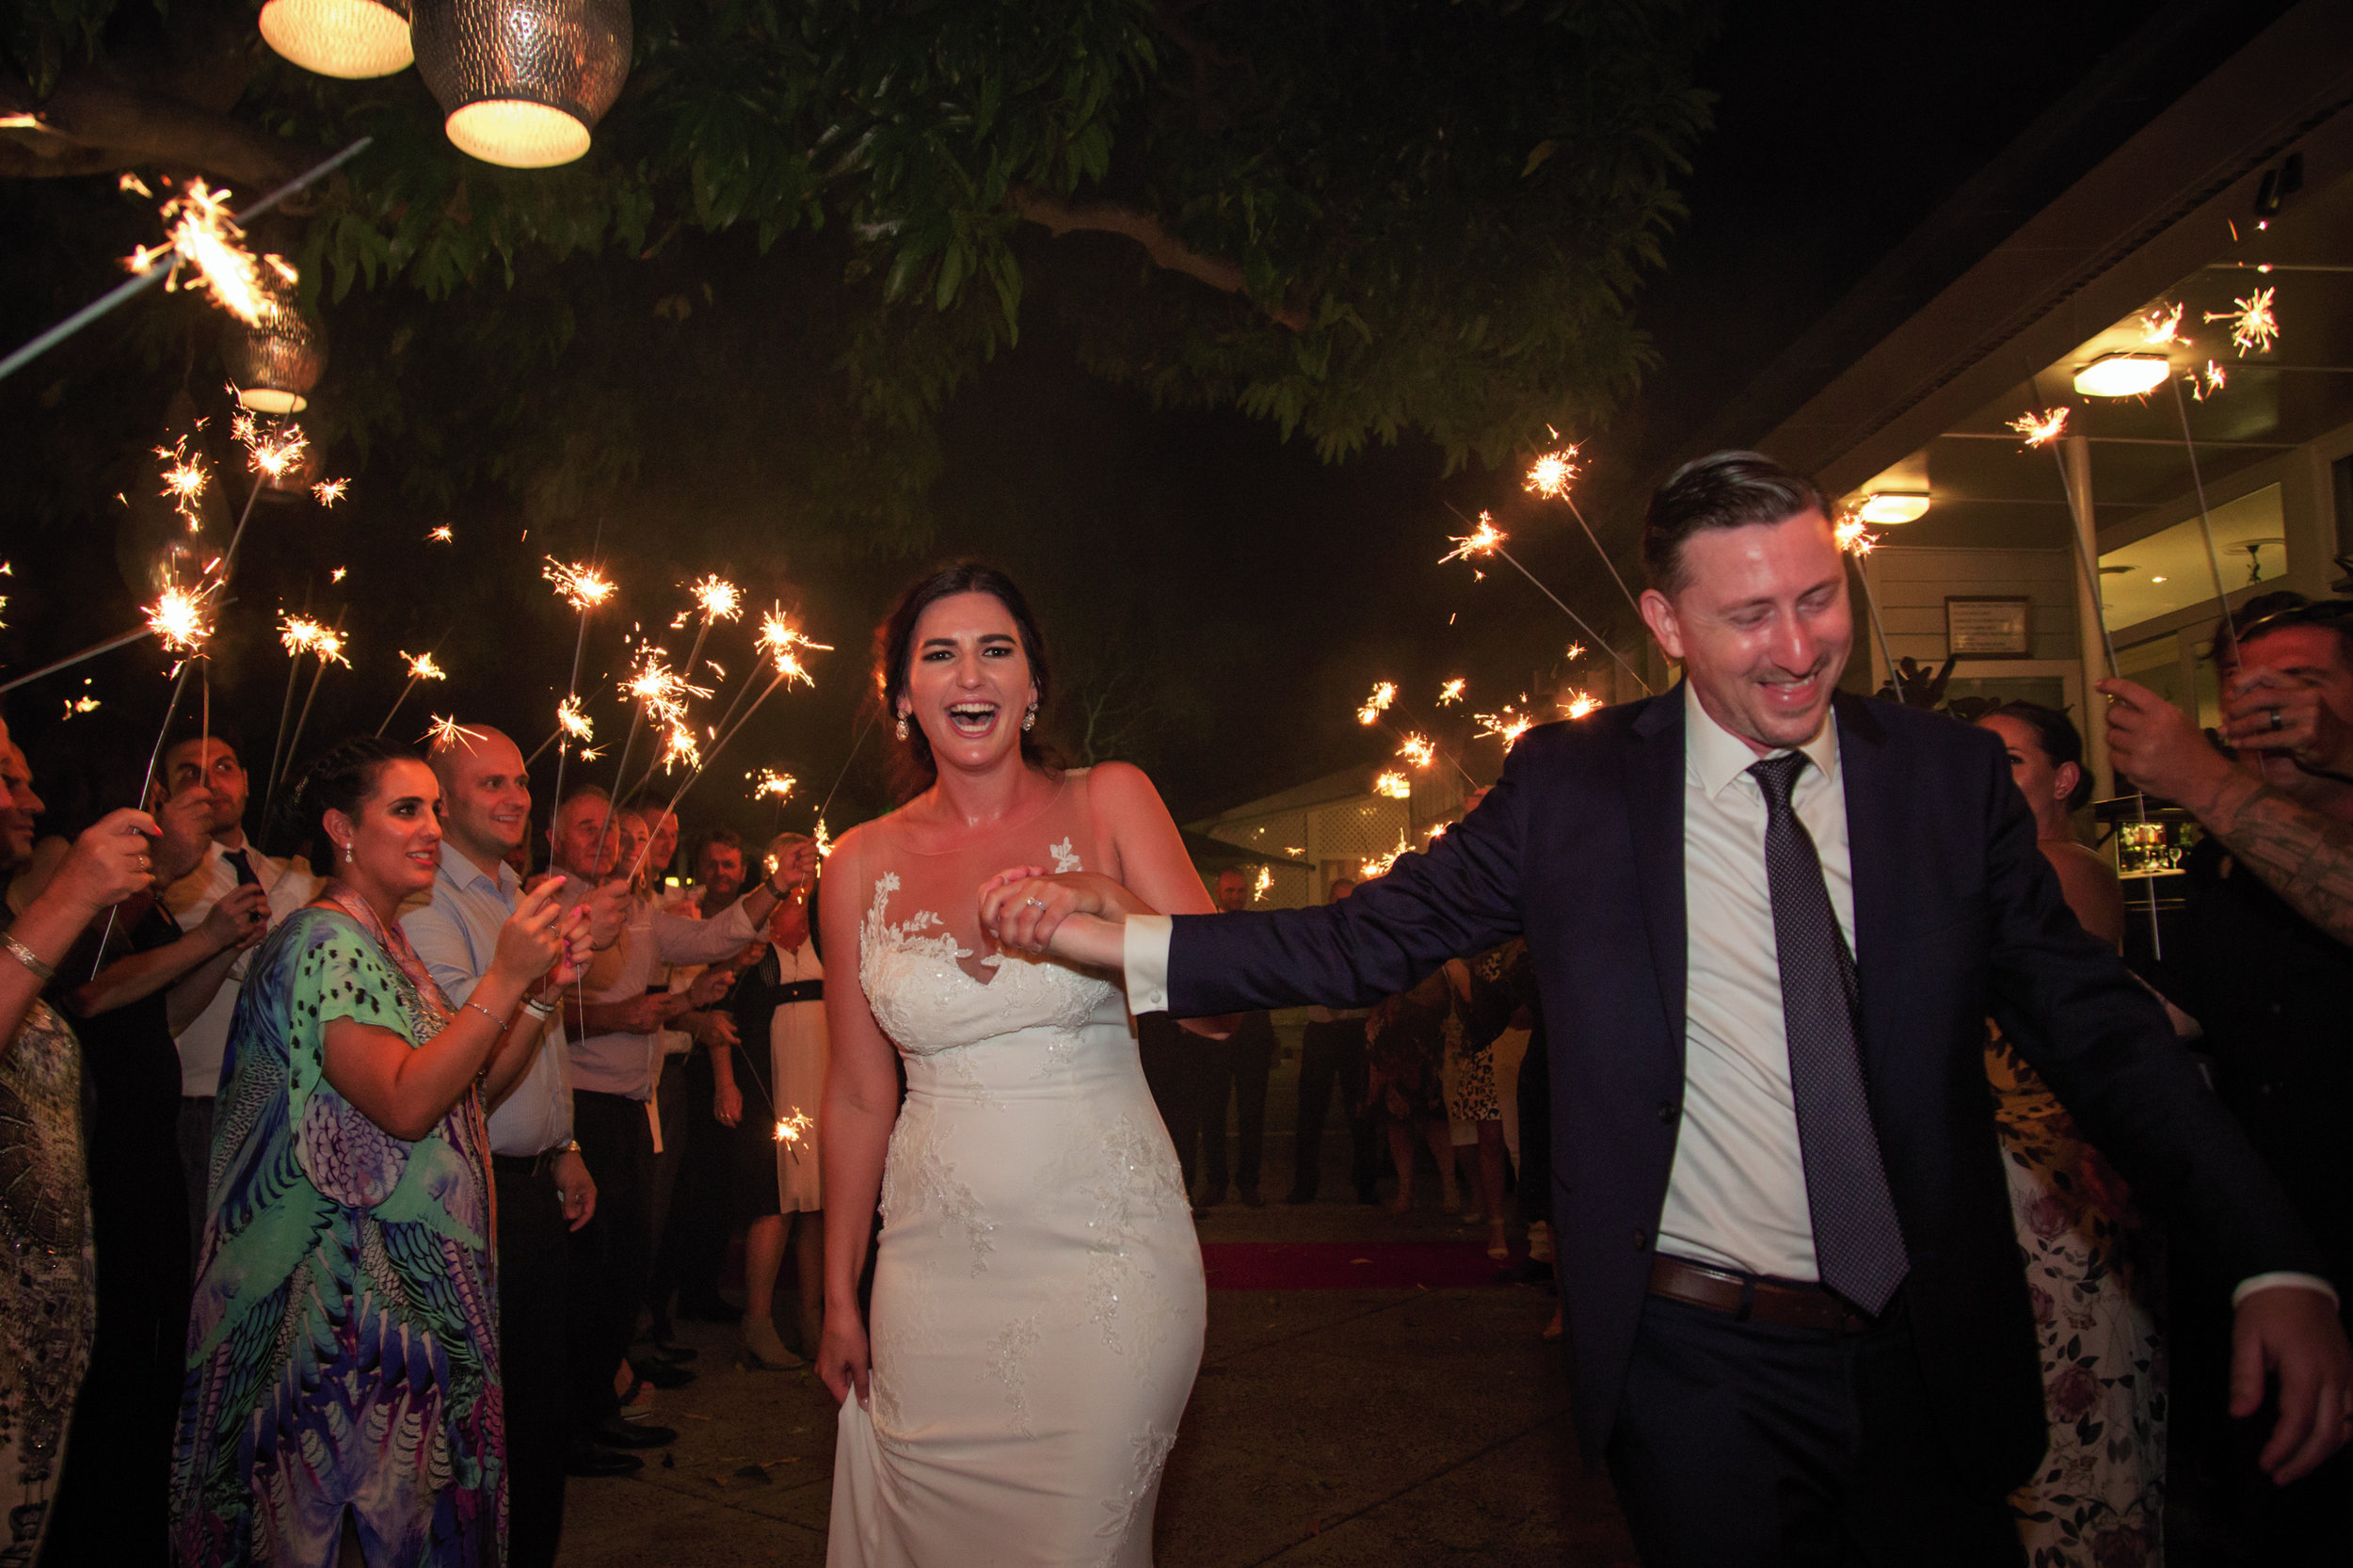 Sparkler-Send-Off-Wedding-Hillstone-St-Lucia-Brisbane-Wedding-Venue-HT-Events.jpg